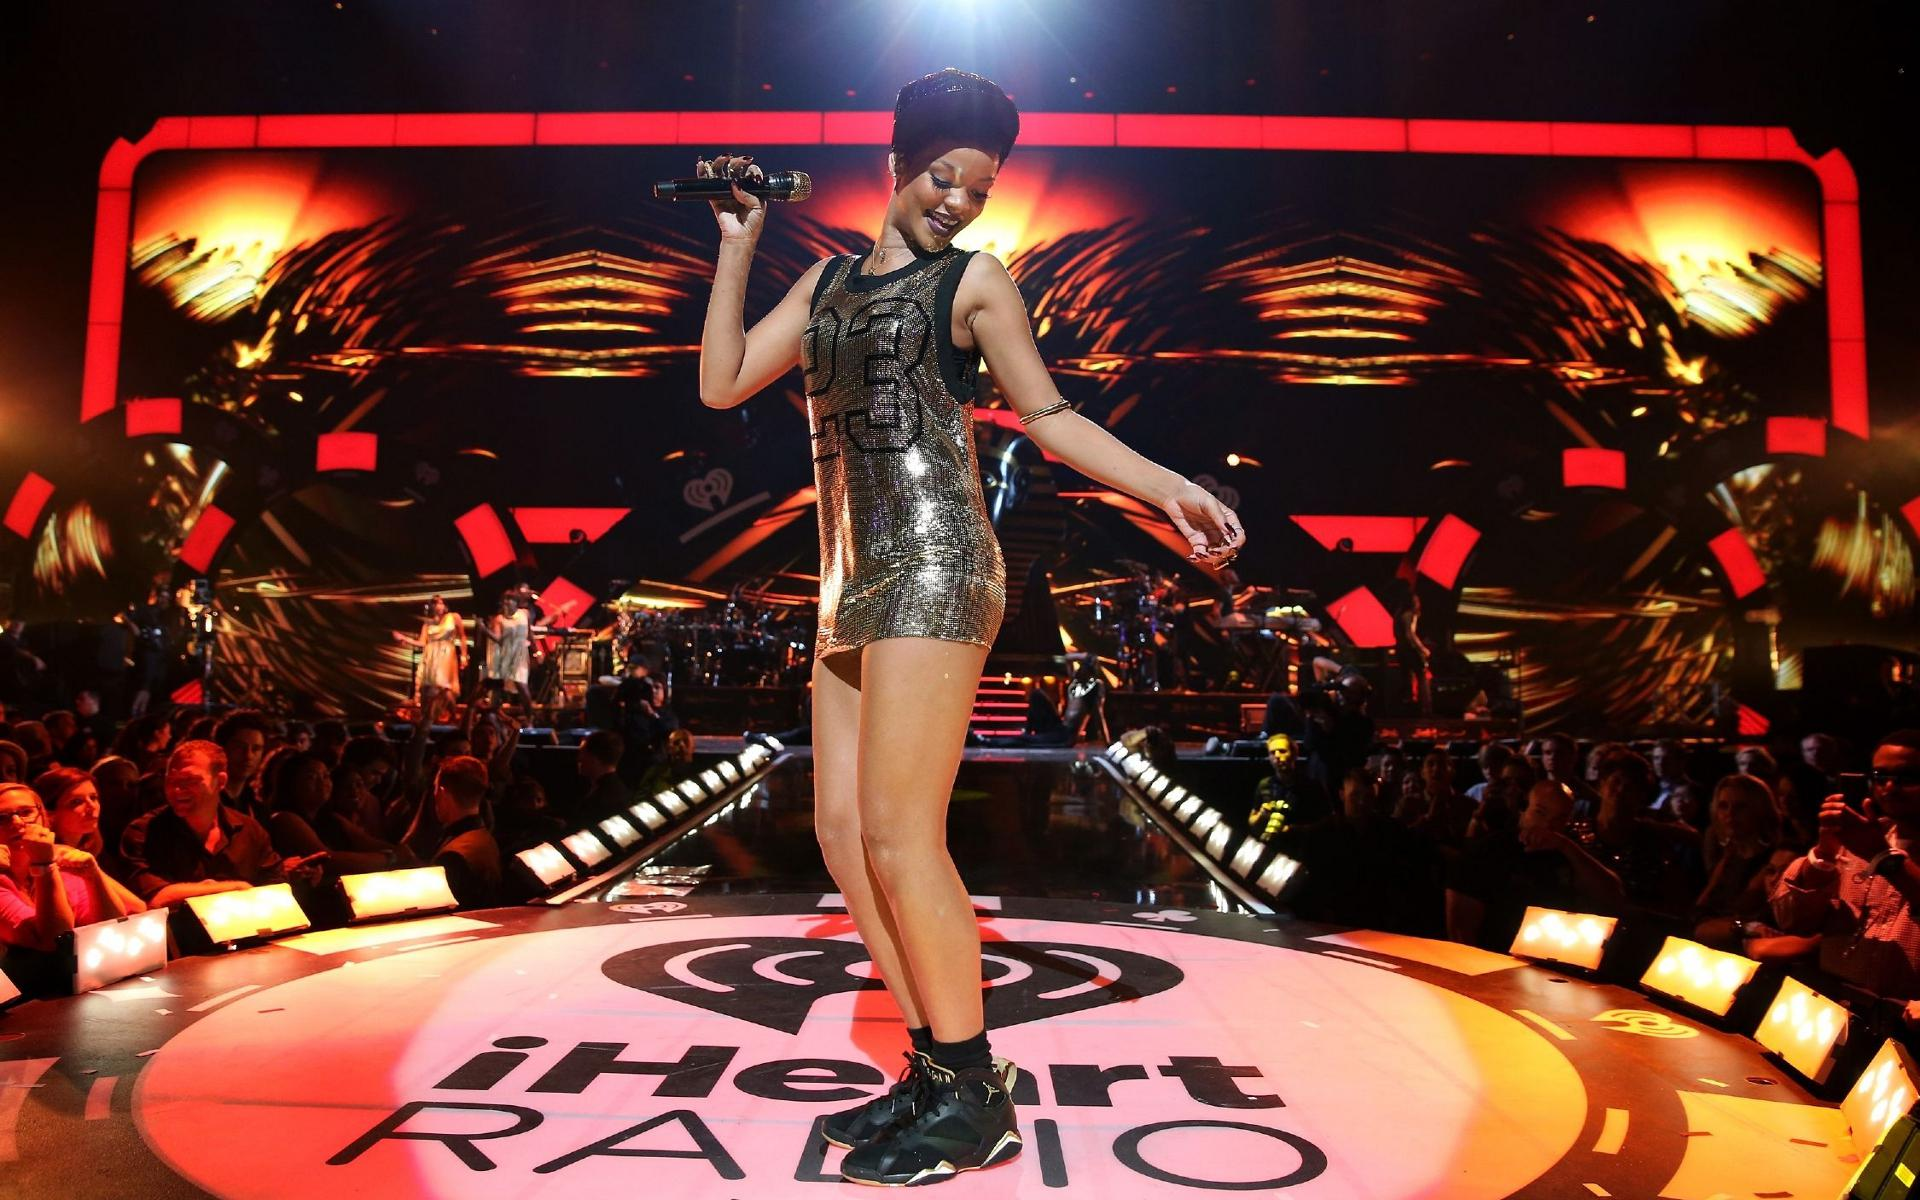 Happy birthday, Throwback to her at the iHeartRadio Fest - 2012! Listen to her HERE: